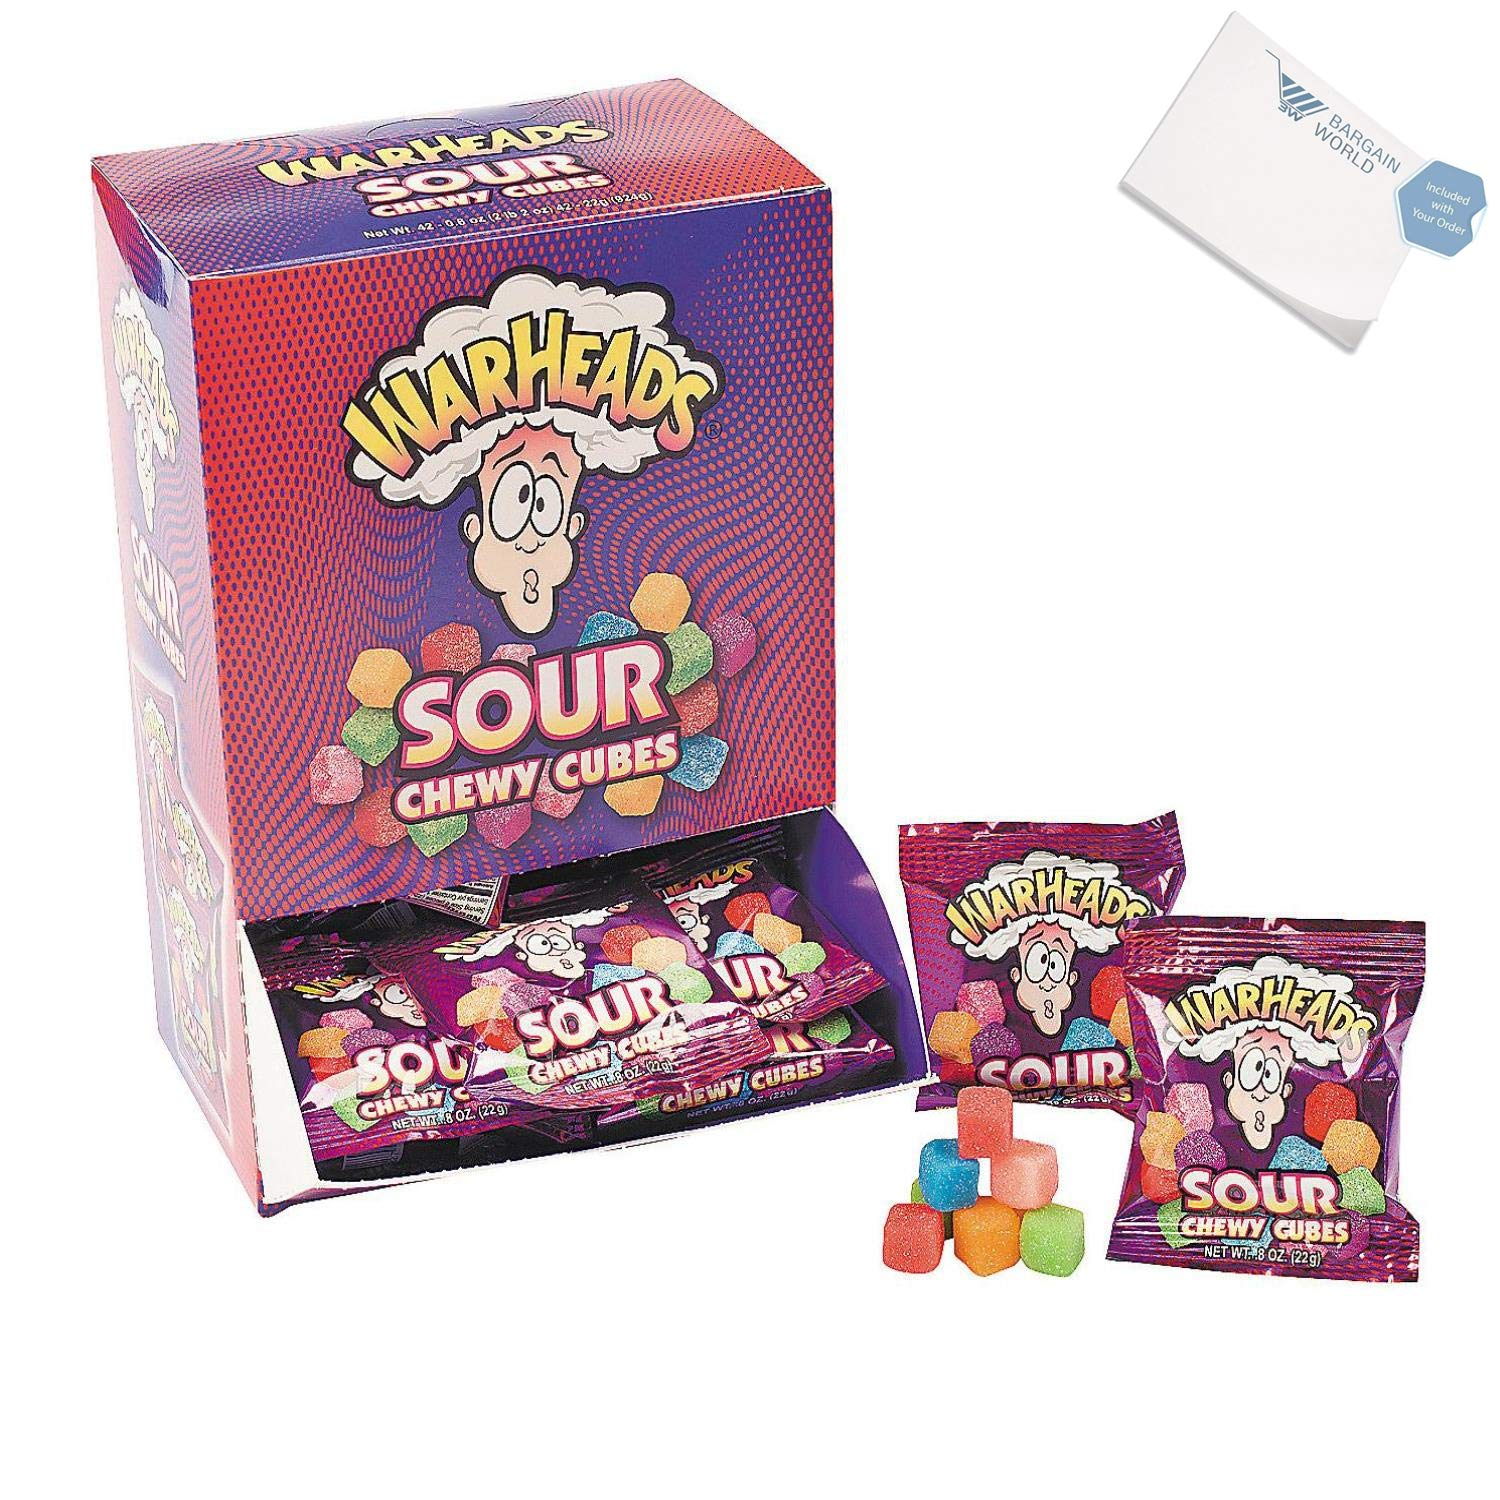 Bargain World WarHeads Sour Chewy Cubes (With Sticky Notes) by Bargain World (Image #2)